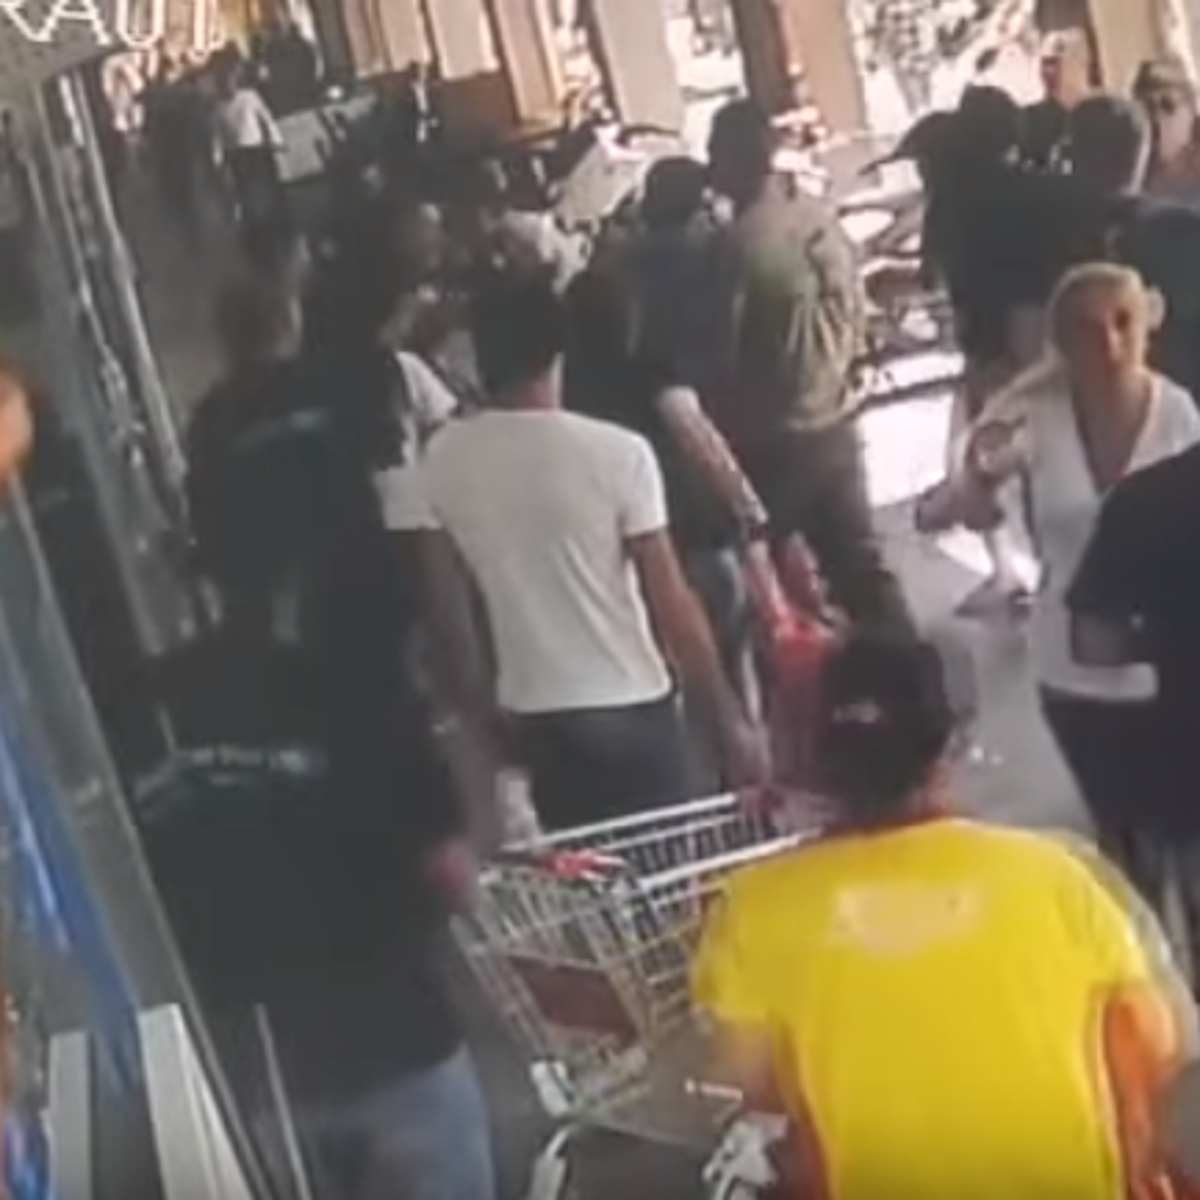 A screenshot from a surveillance camera video showing police beating an Arab employee outside a Tel Aviv supermarket, May 22, 2016.